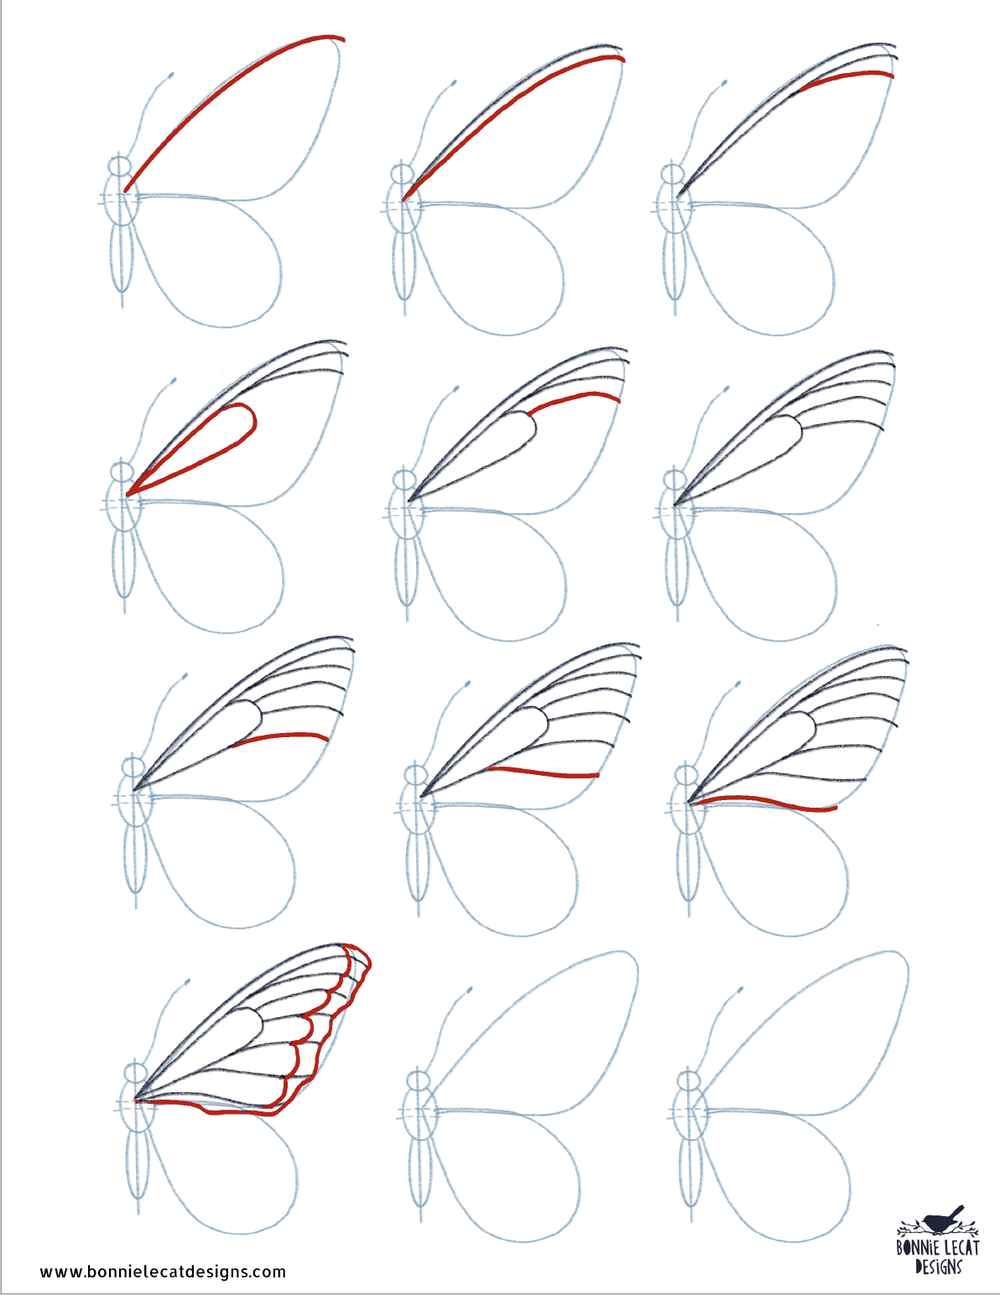 Follow this process to draw the lines in your butterfly's wings.